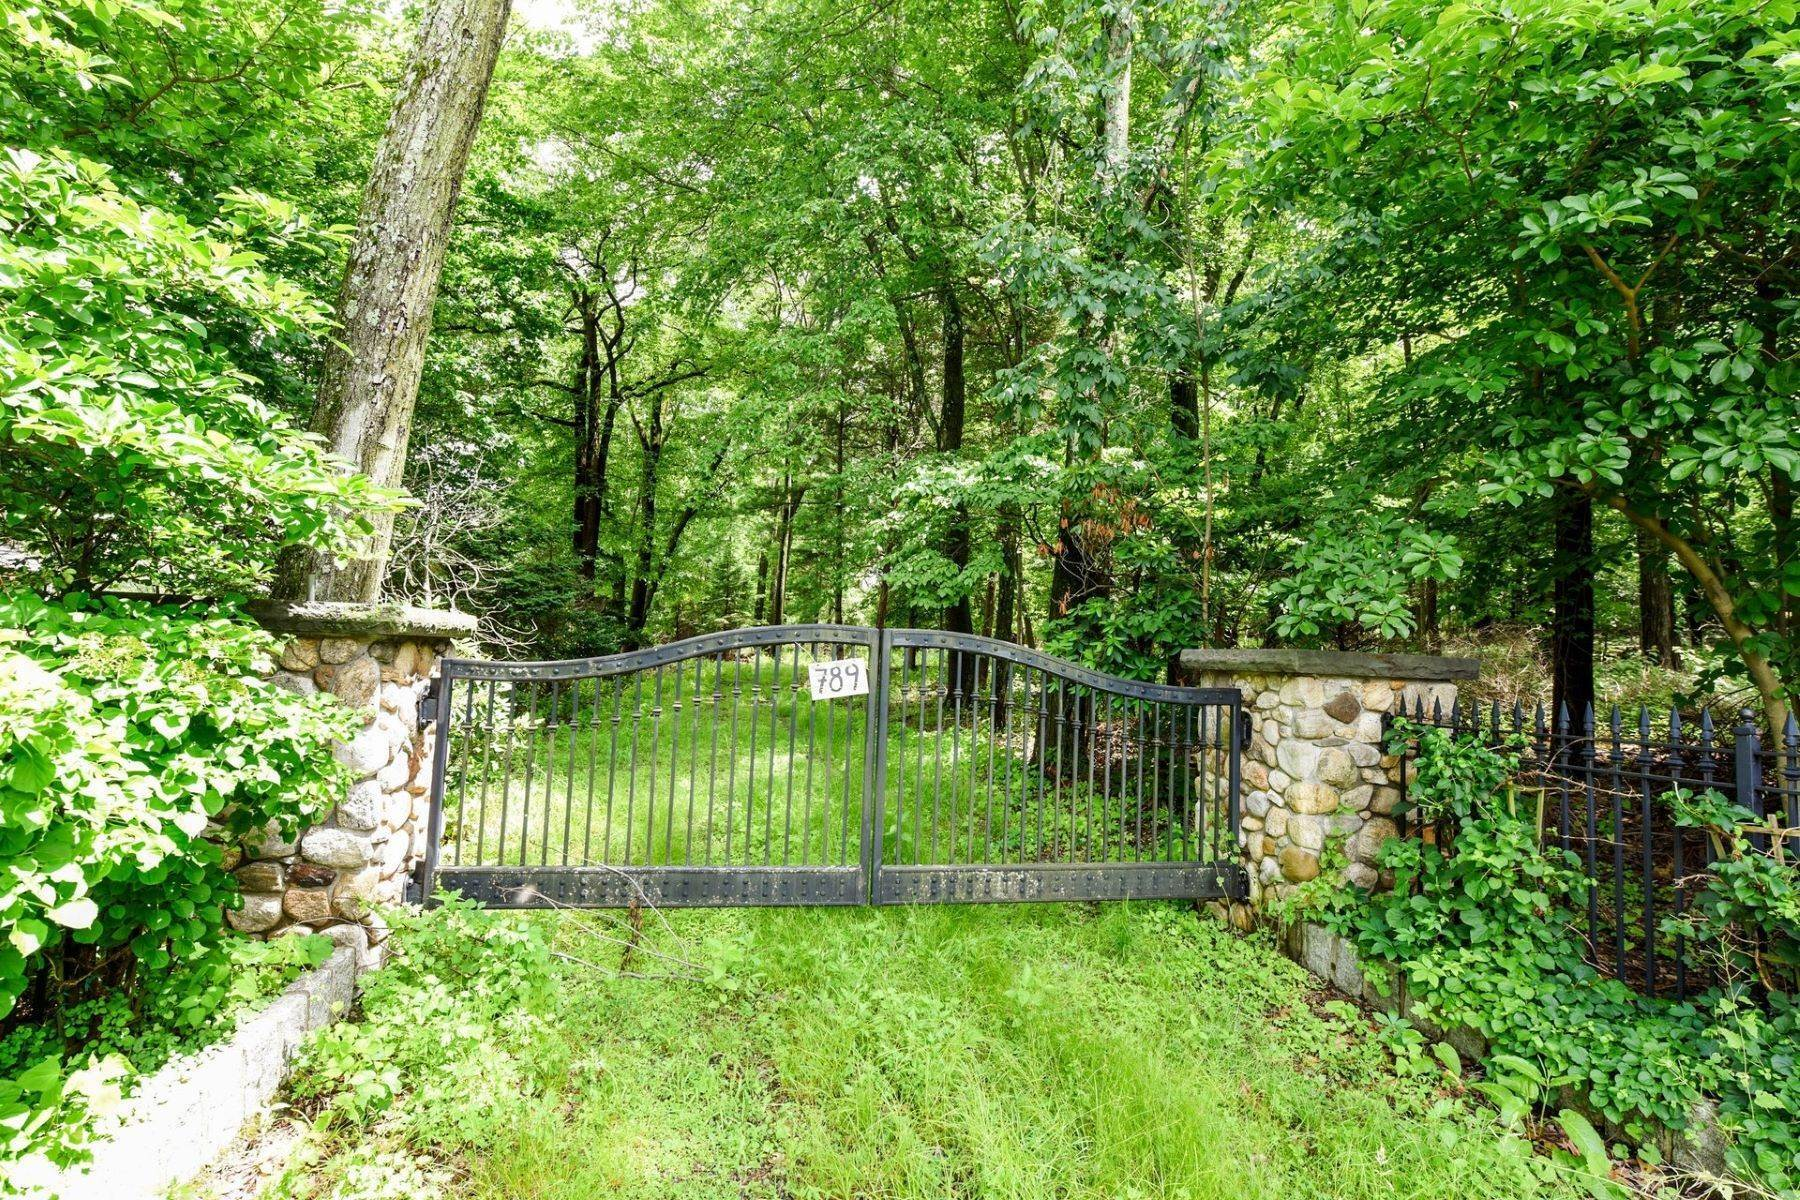 Land for Sale at Magnificent Property 789 Colonial Rd Franklin Lakes, New Jersey 07417 United States